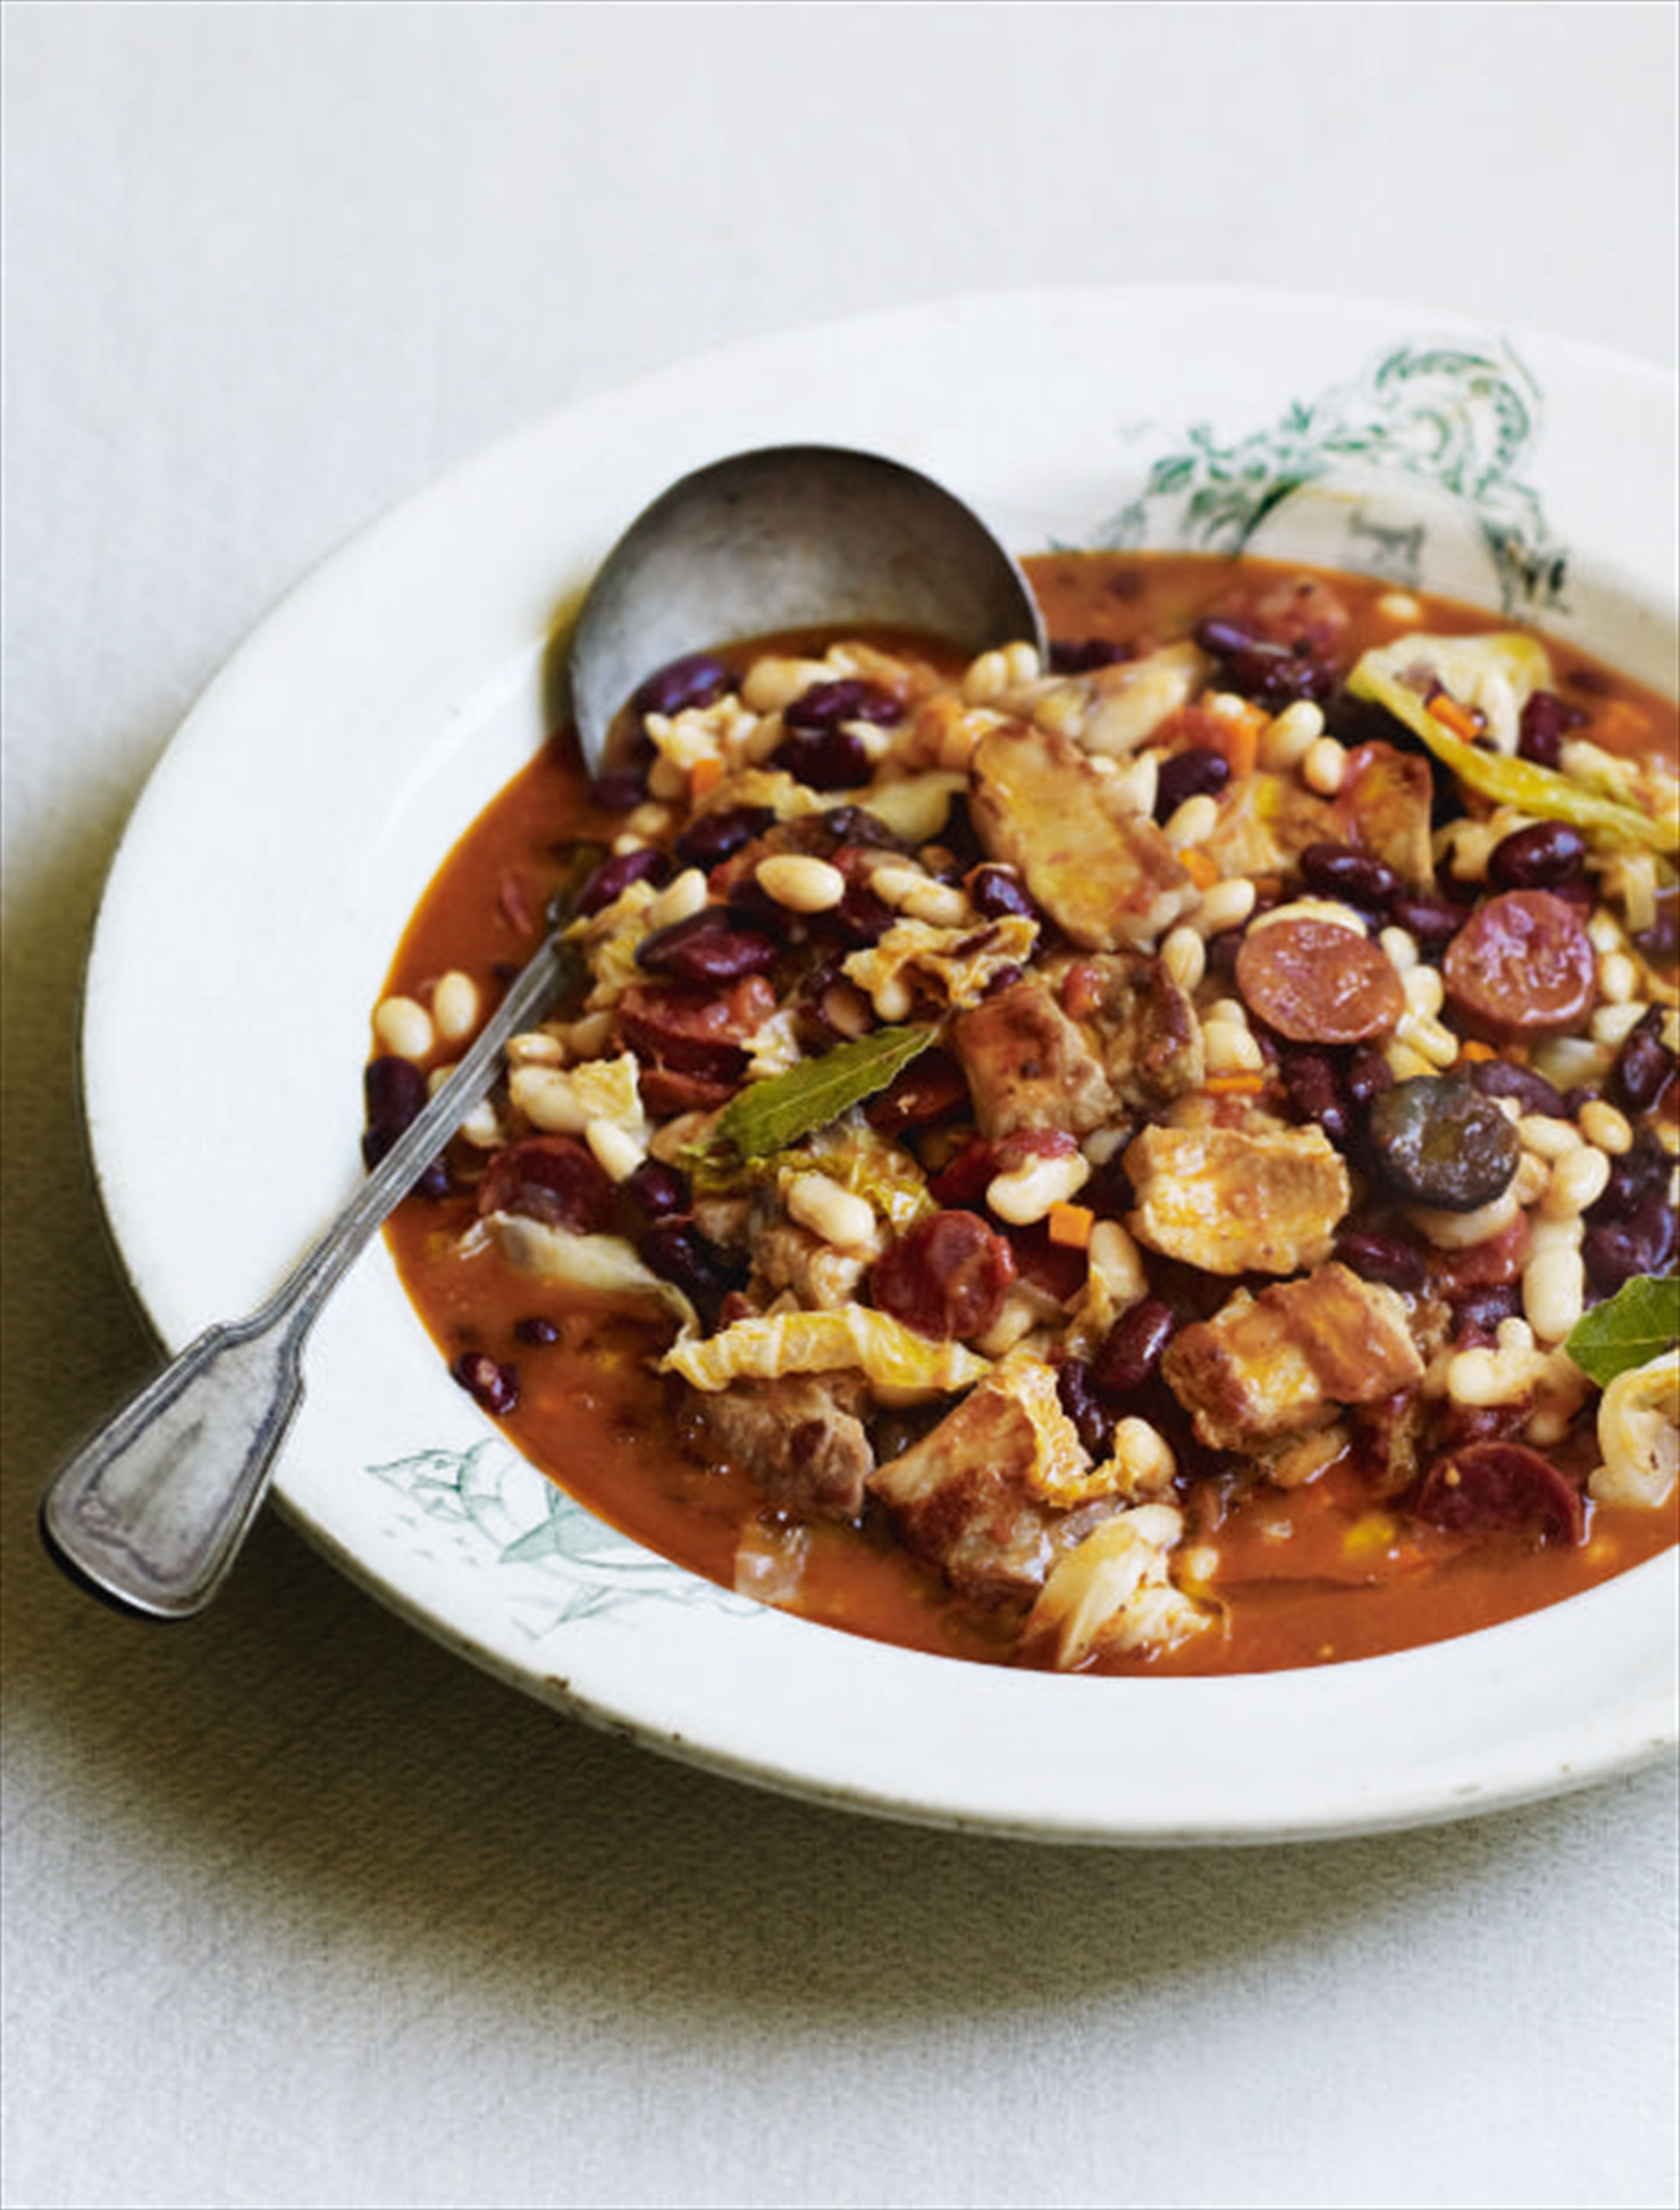 Slow-simmered bean, cabbage and pork stew